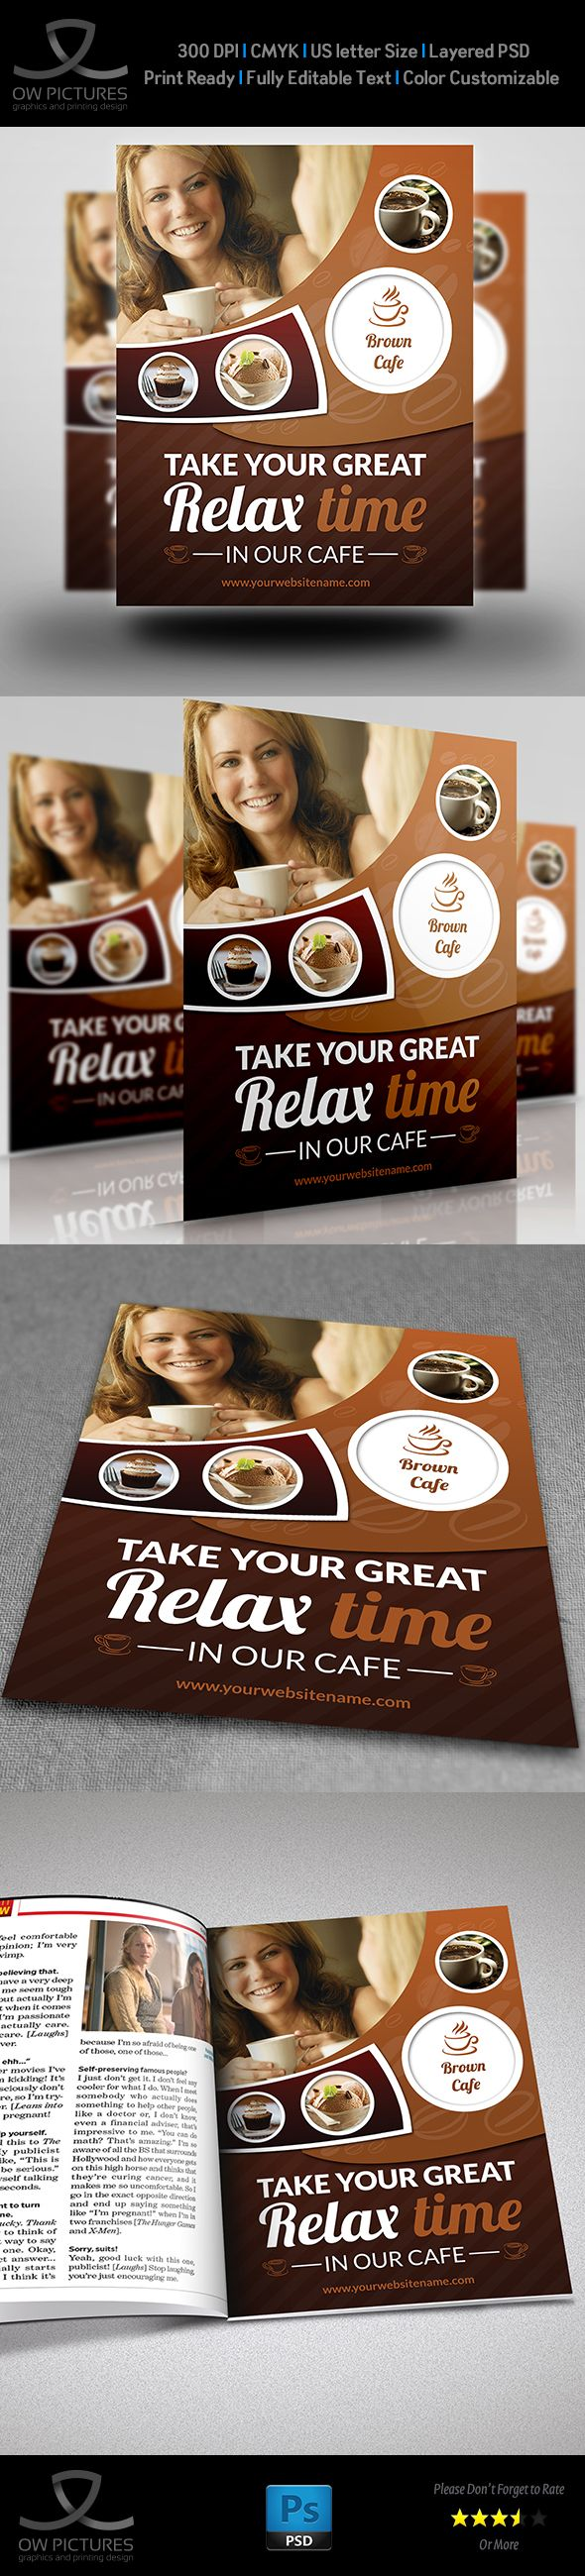 Cafe Restaurant Flyer Template Vol.3 on Behance